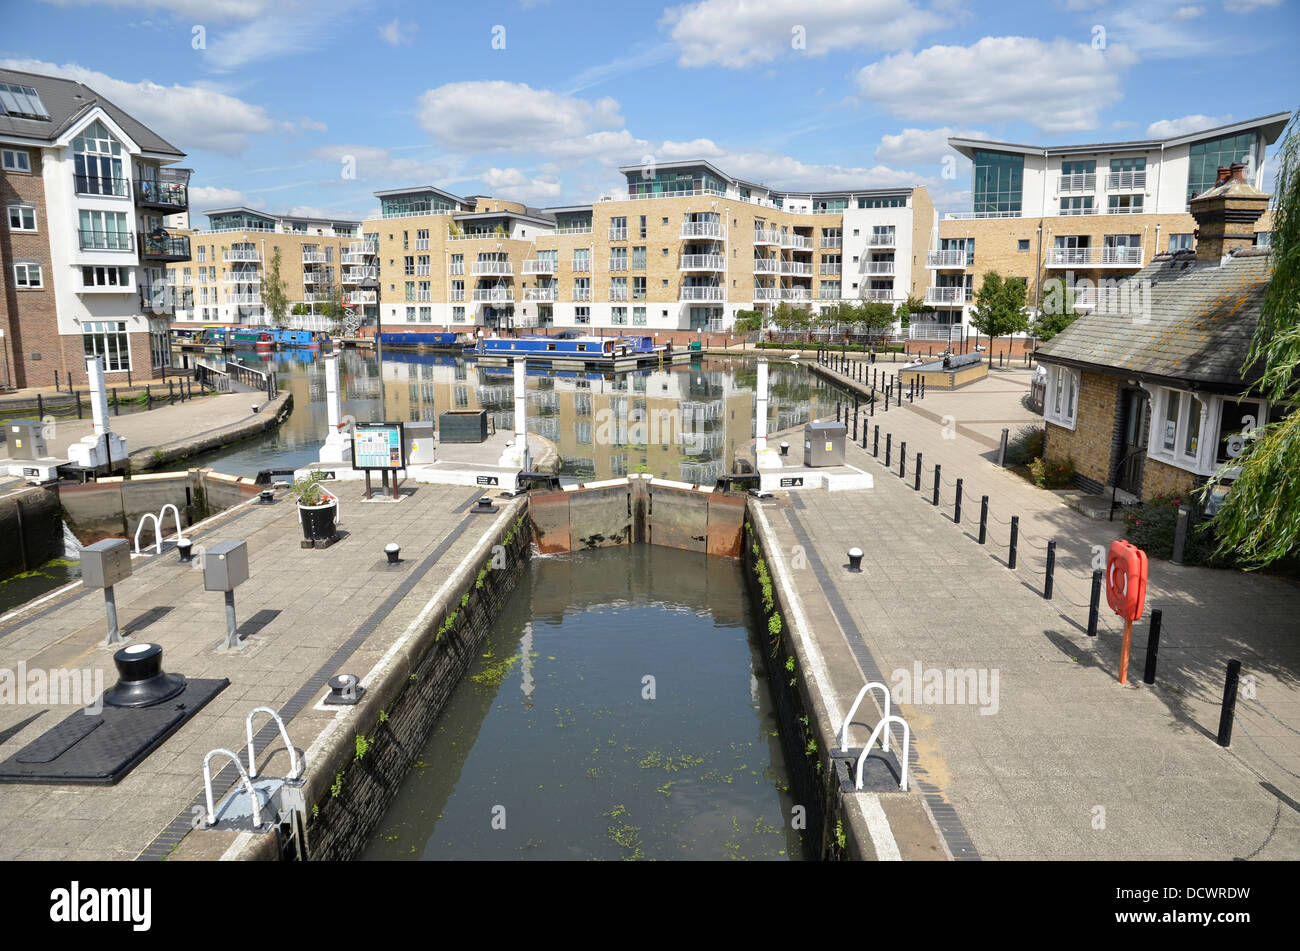 The Grand Union canal basin in Brentford, west London - Stock Image